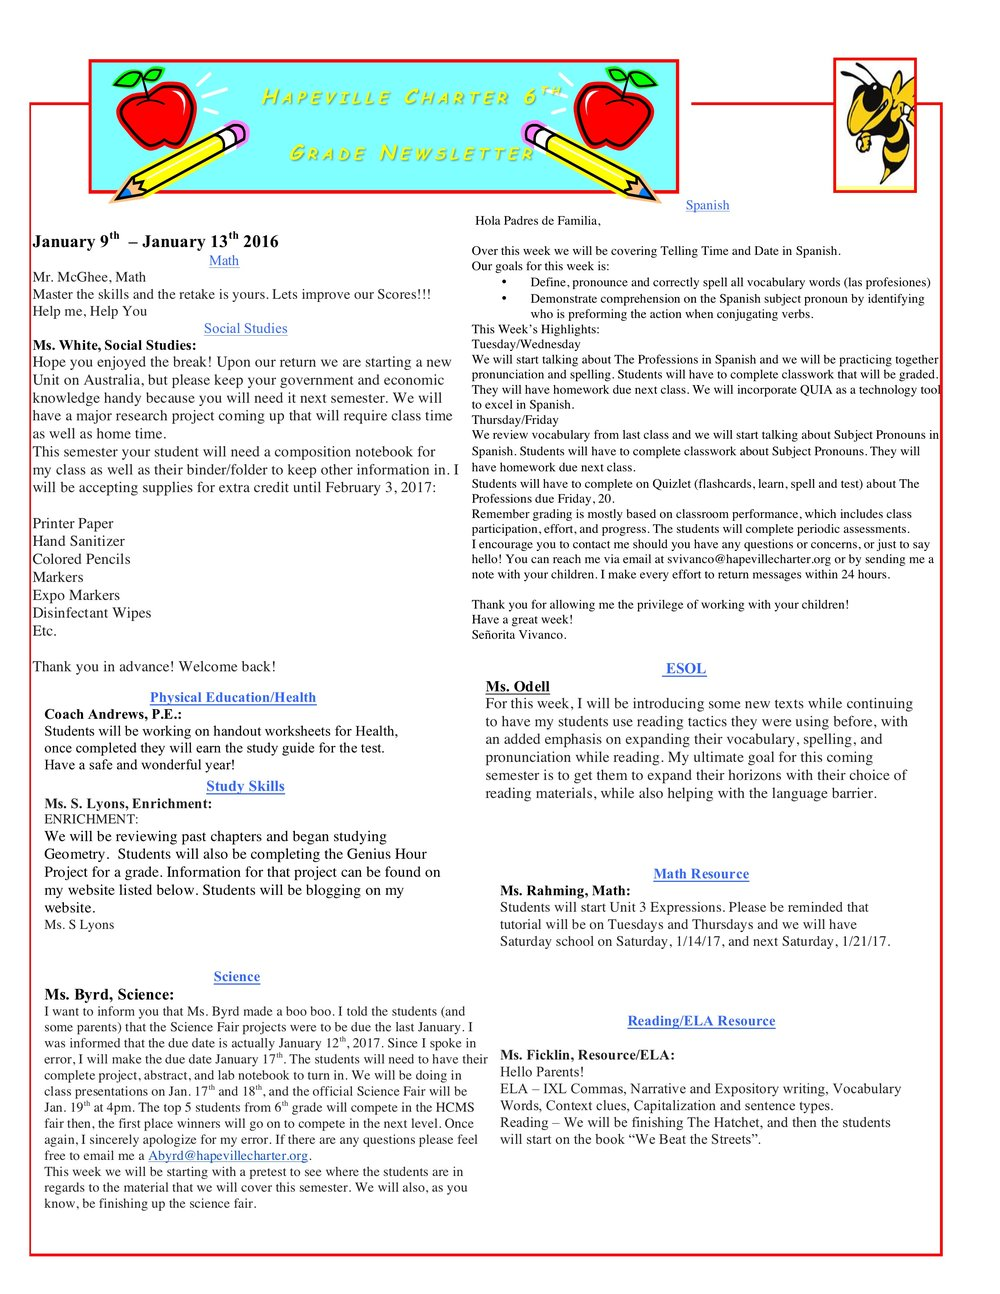 Newsletter Image6th Grade Newsletter 1-9-17.jpeg